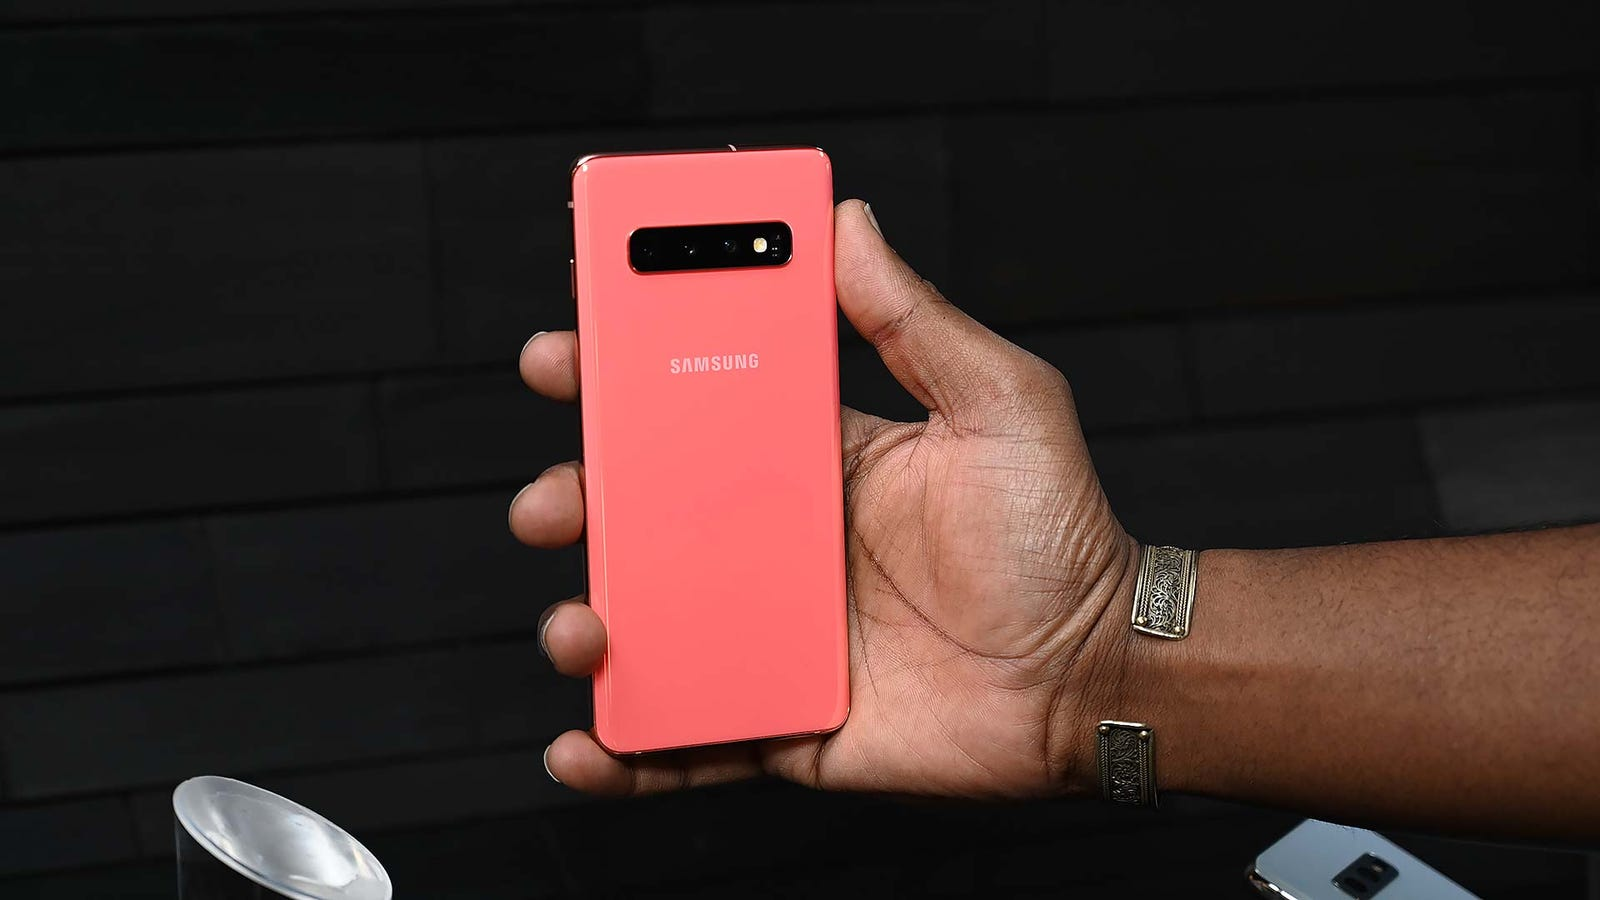 Coral is one of the S10's new signature colors, and is based on one of Pantone's new colors for 2019.